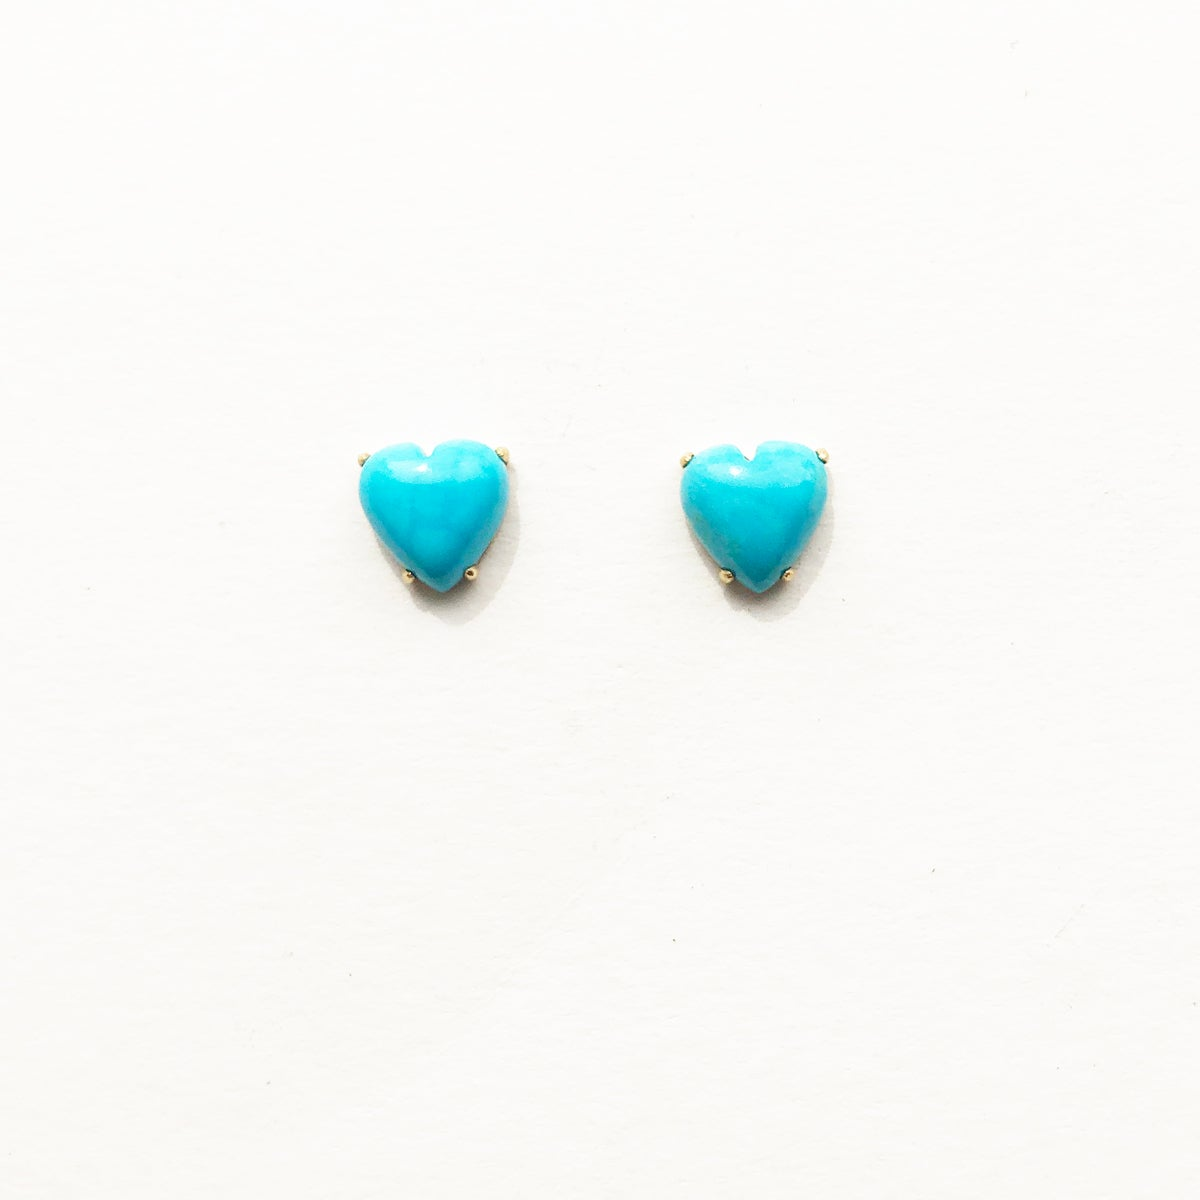 Image of Sleeping Beauty Turquoise Earring